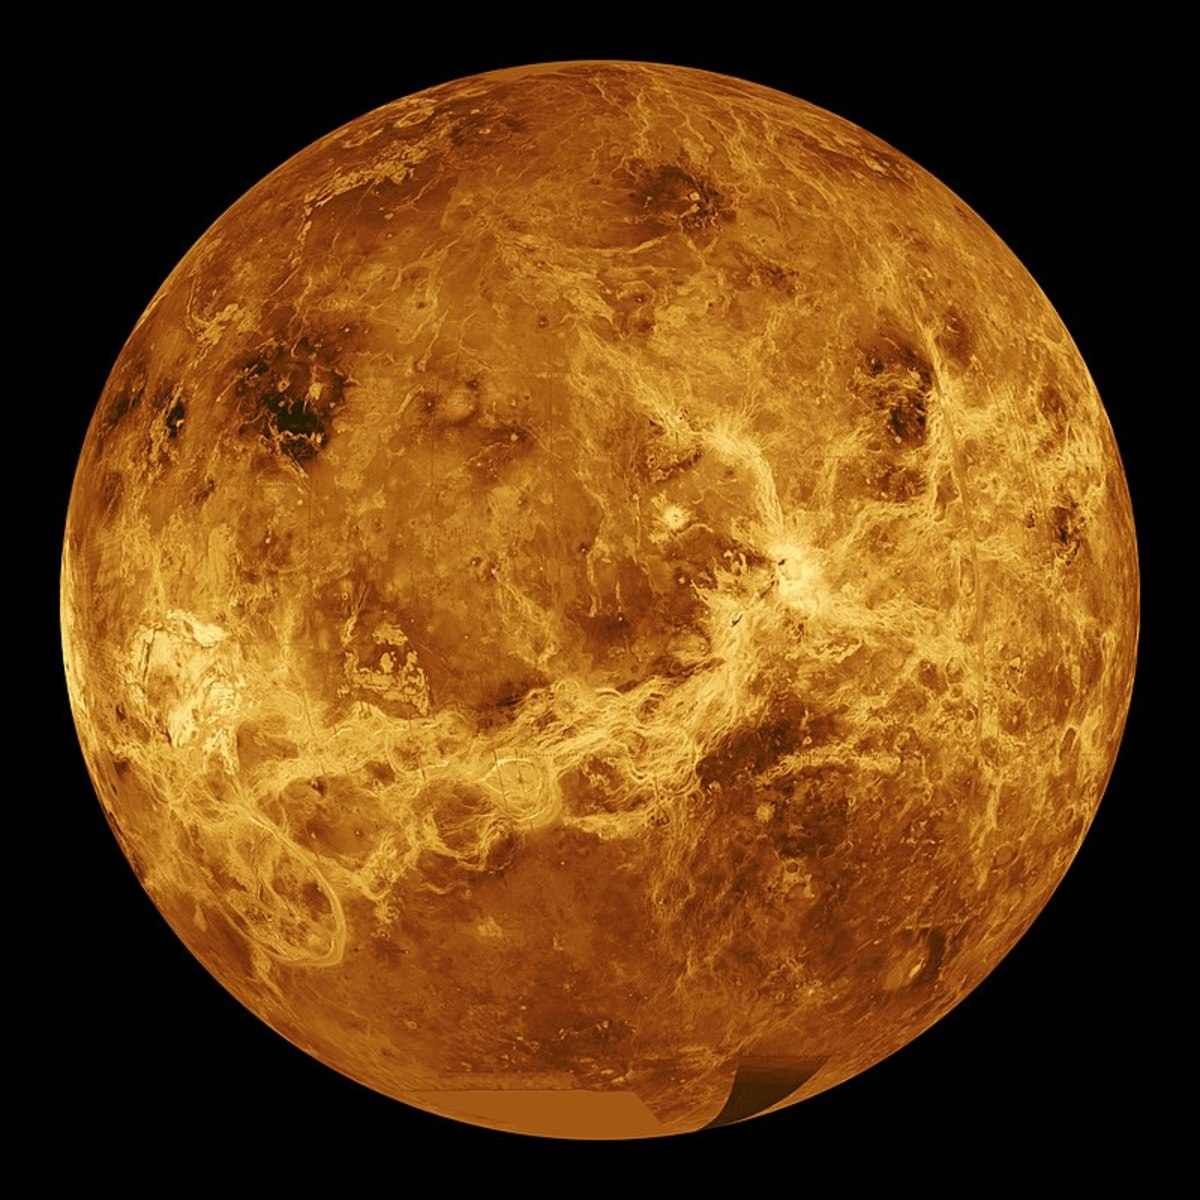 Venus: Quick Facts